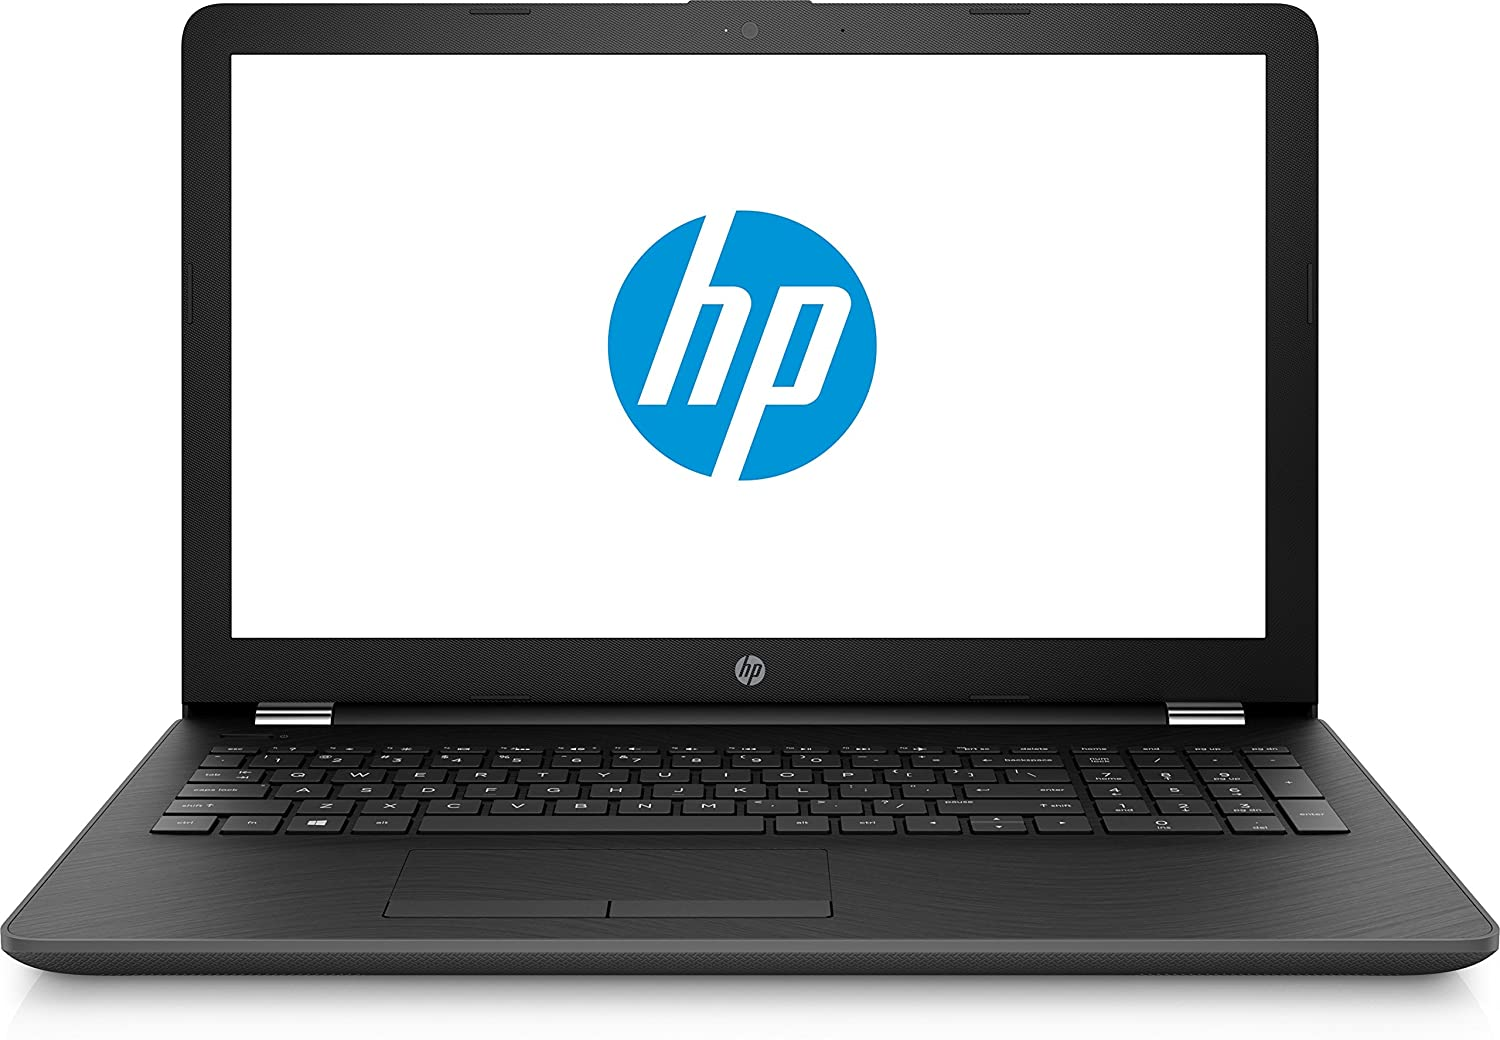 2018 High Performance HP Flagship 15.6 Inch Touchscreen Laptop, Intel Core i7-8550U, 12GB RAM, 1TB 5400 RPM SATA, Intel UHD Graphics 620, Windows 10 Home